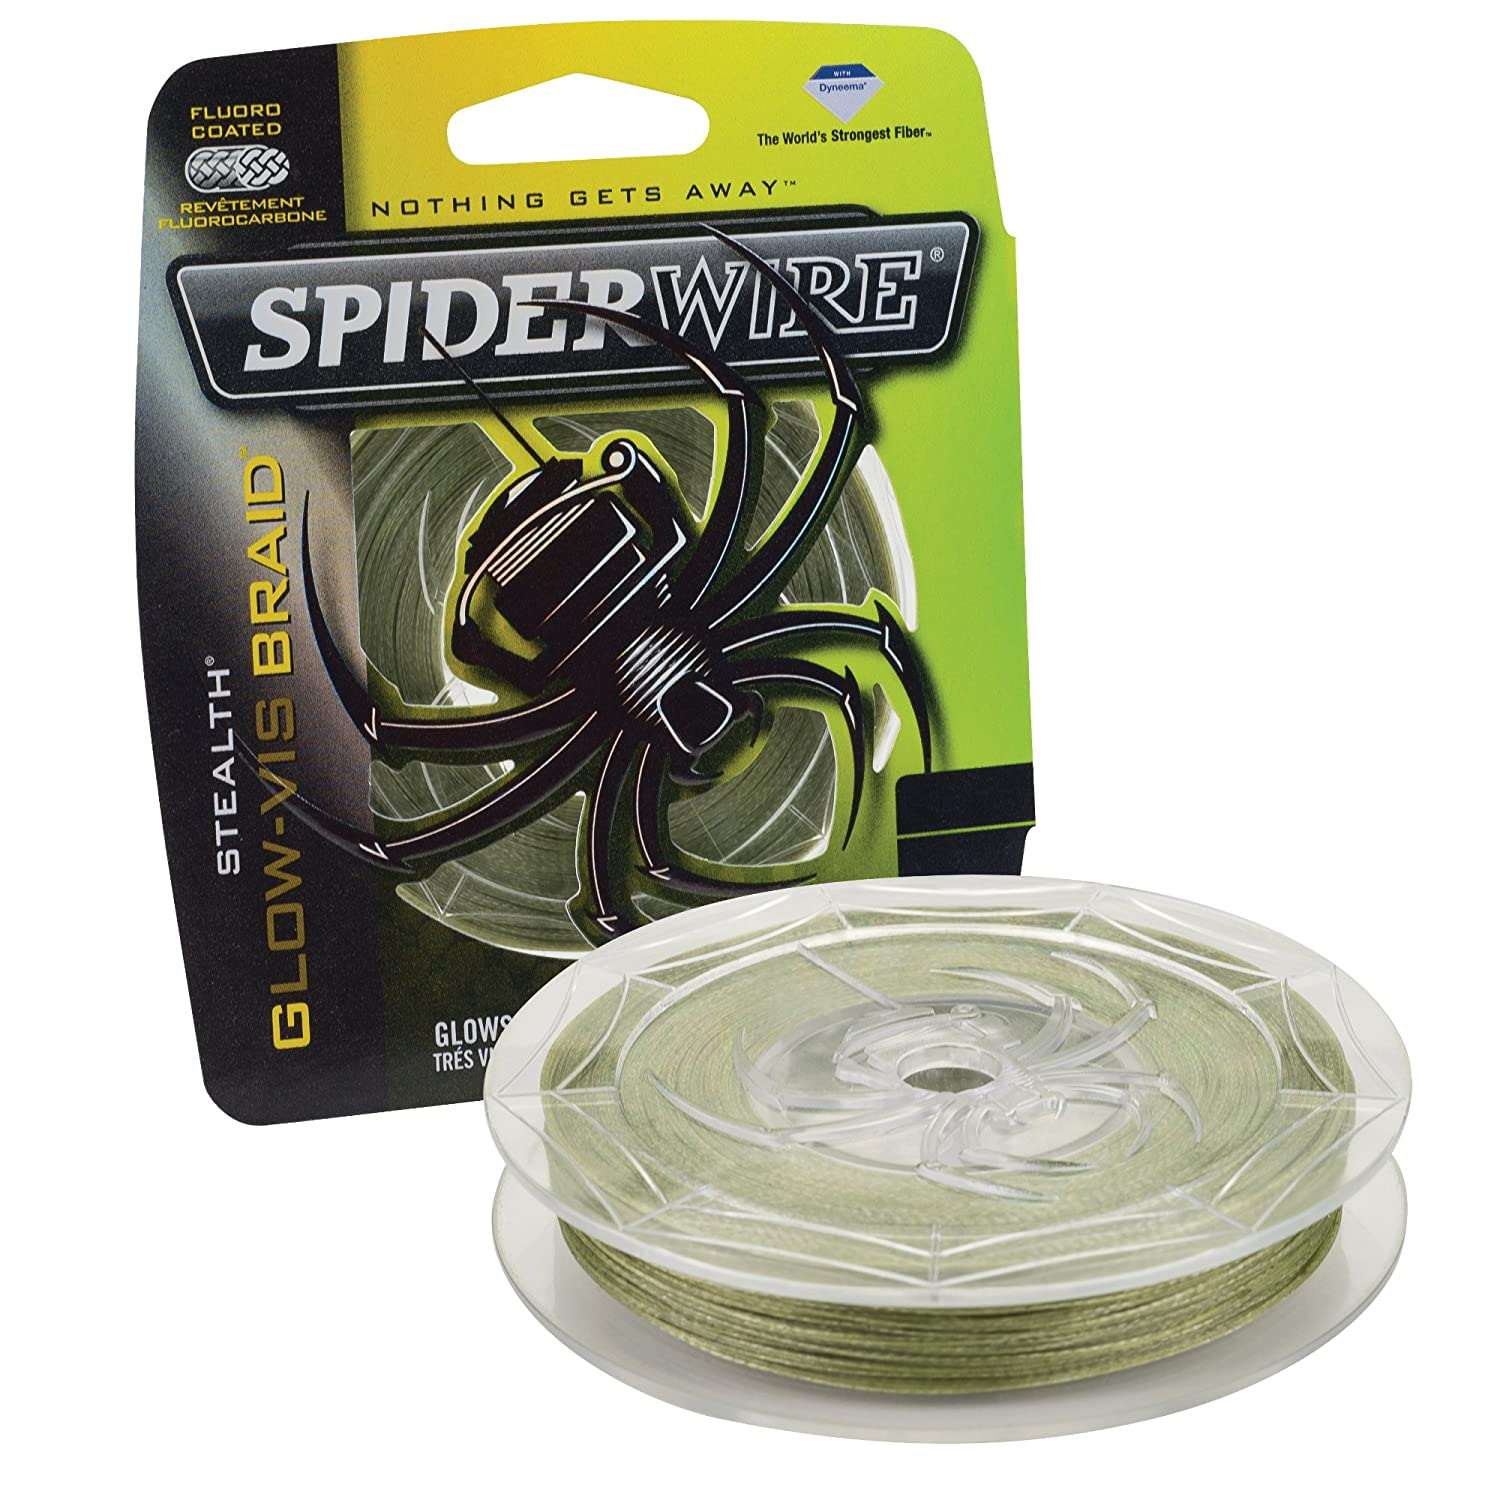 Spiderwire Braided Stealth Superline 1339718-P